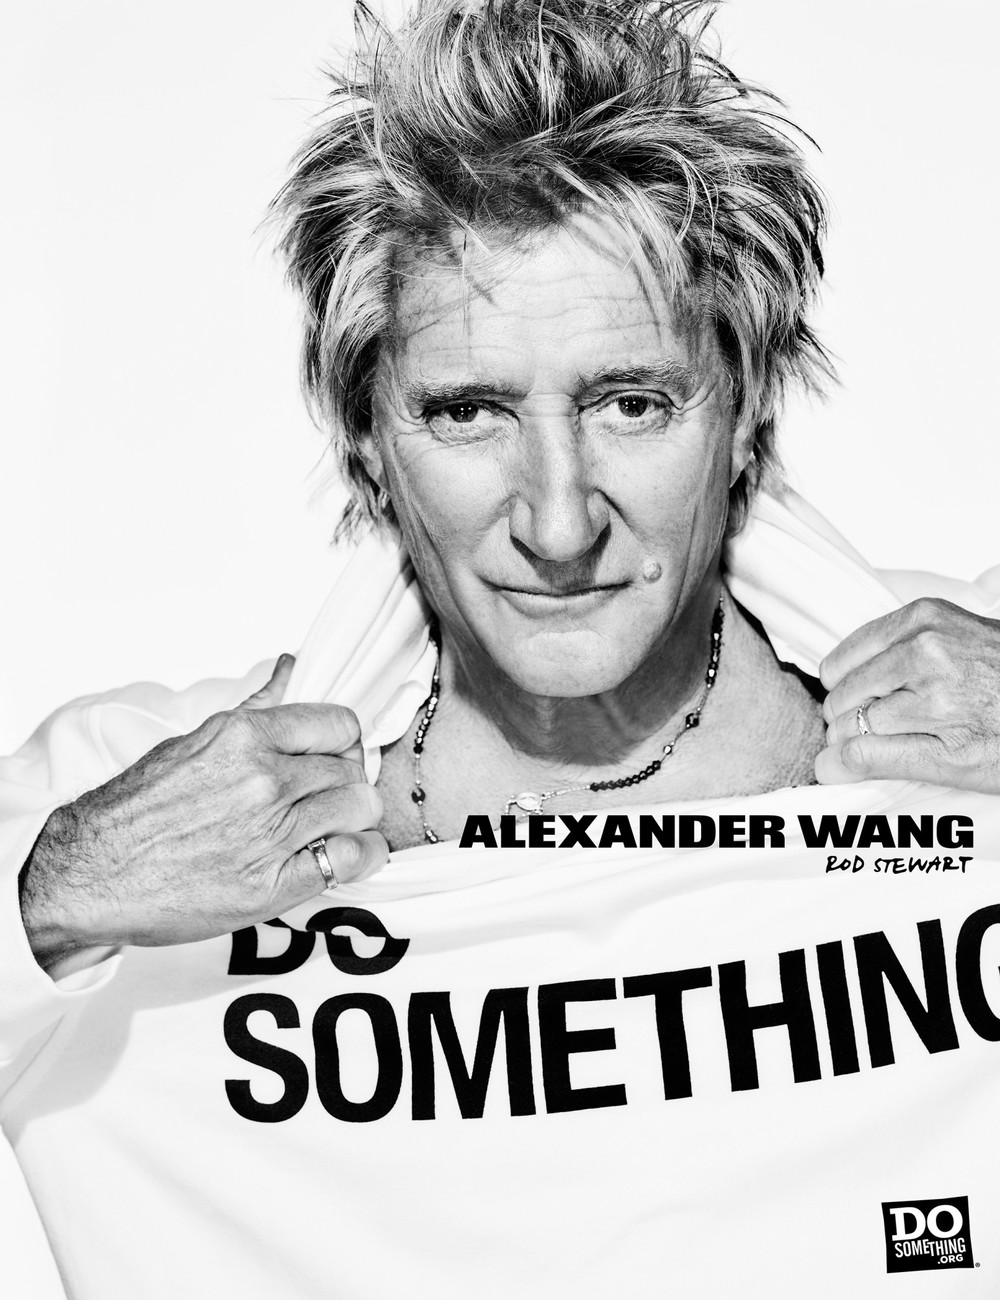 3-ROD-STEWART-AW-X-DOSOMETHING-1542x2004.jpg